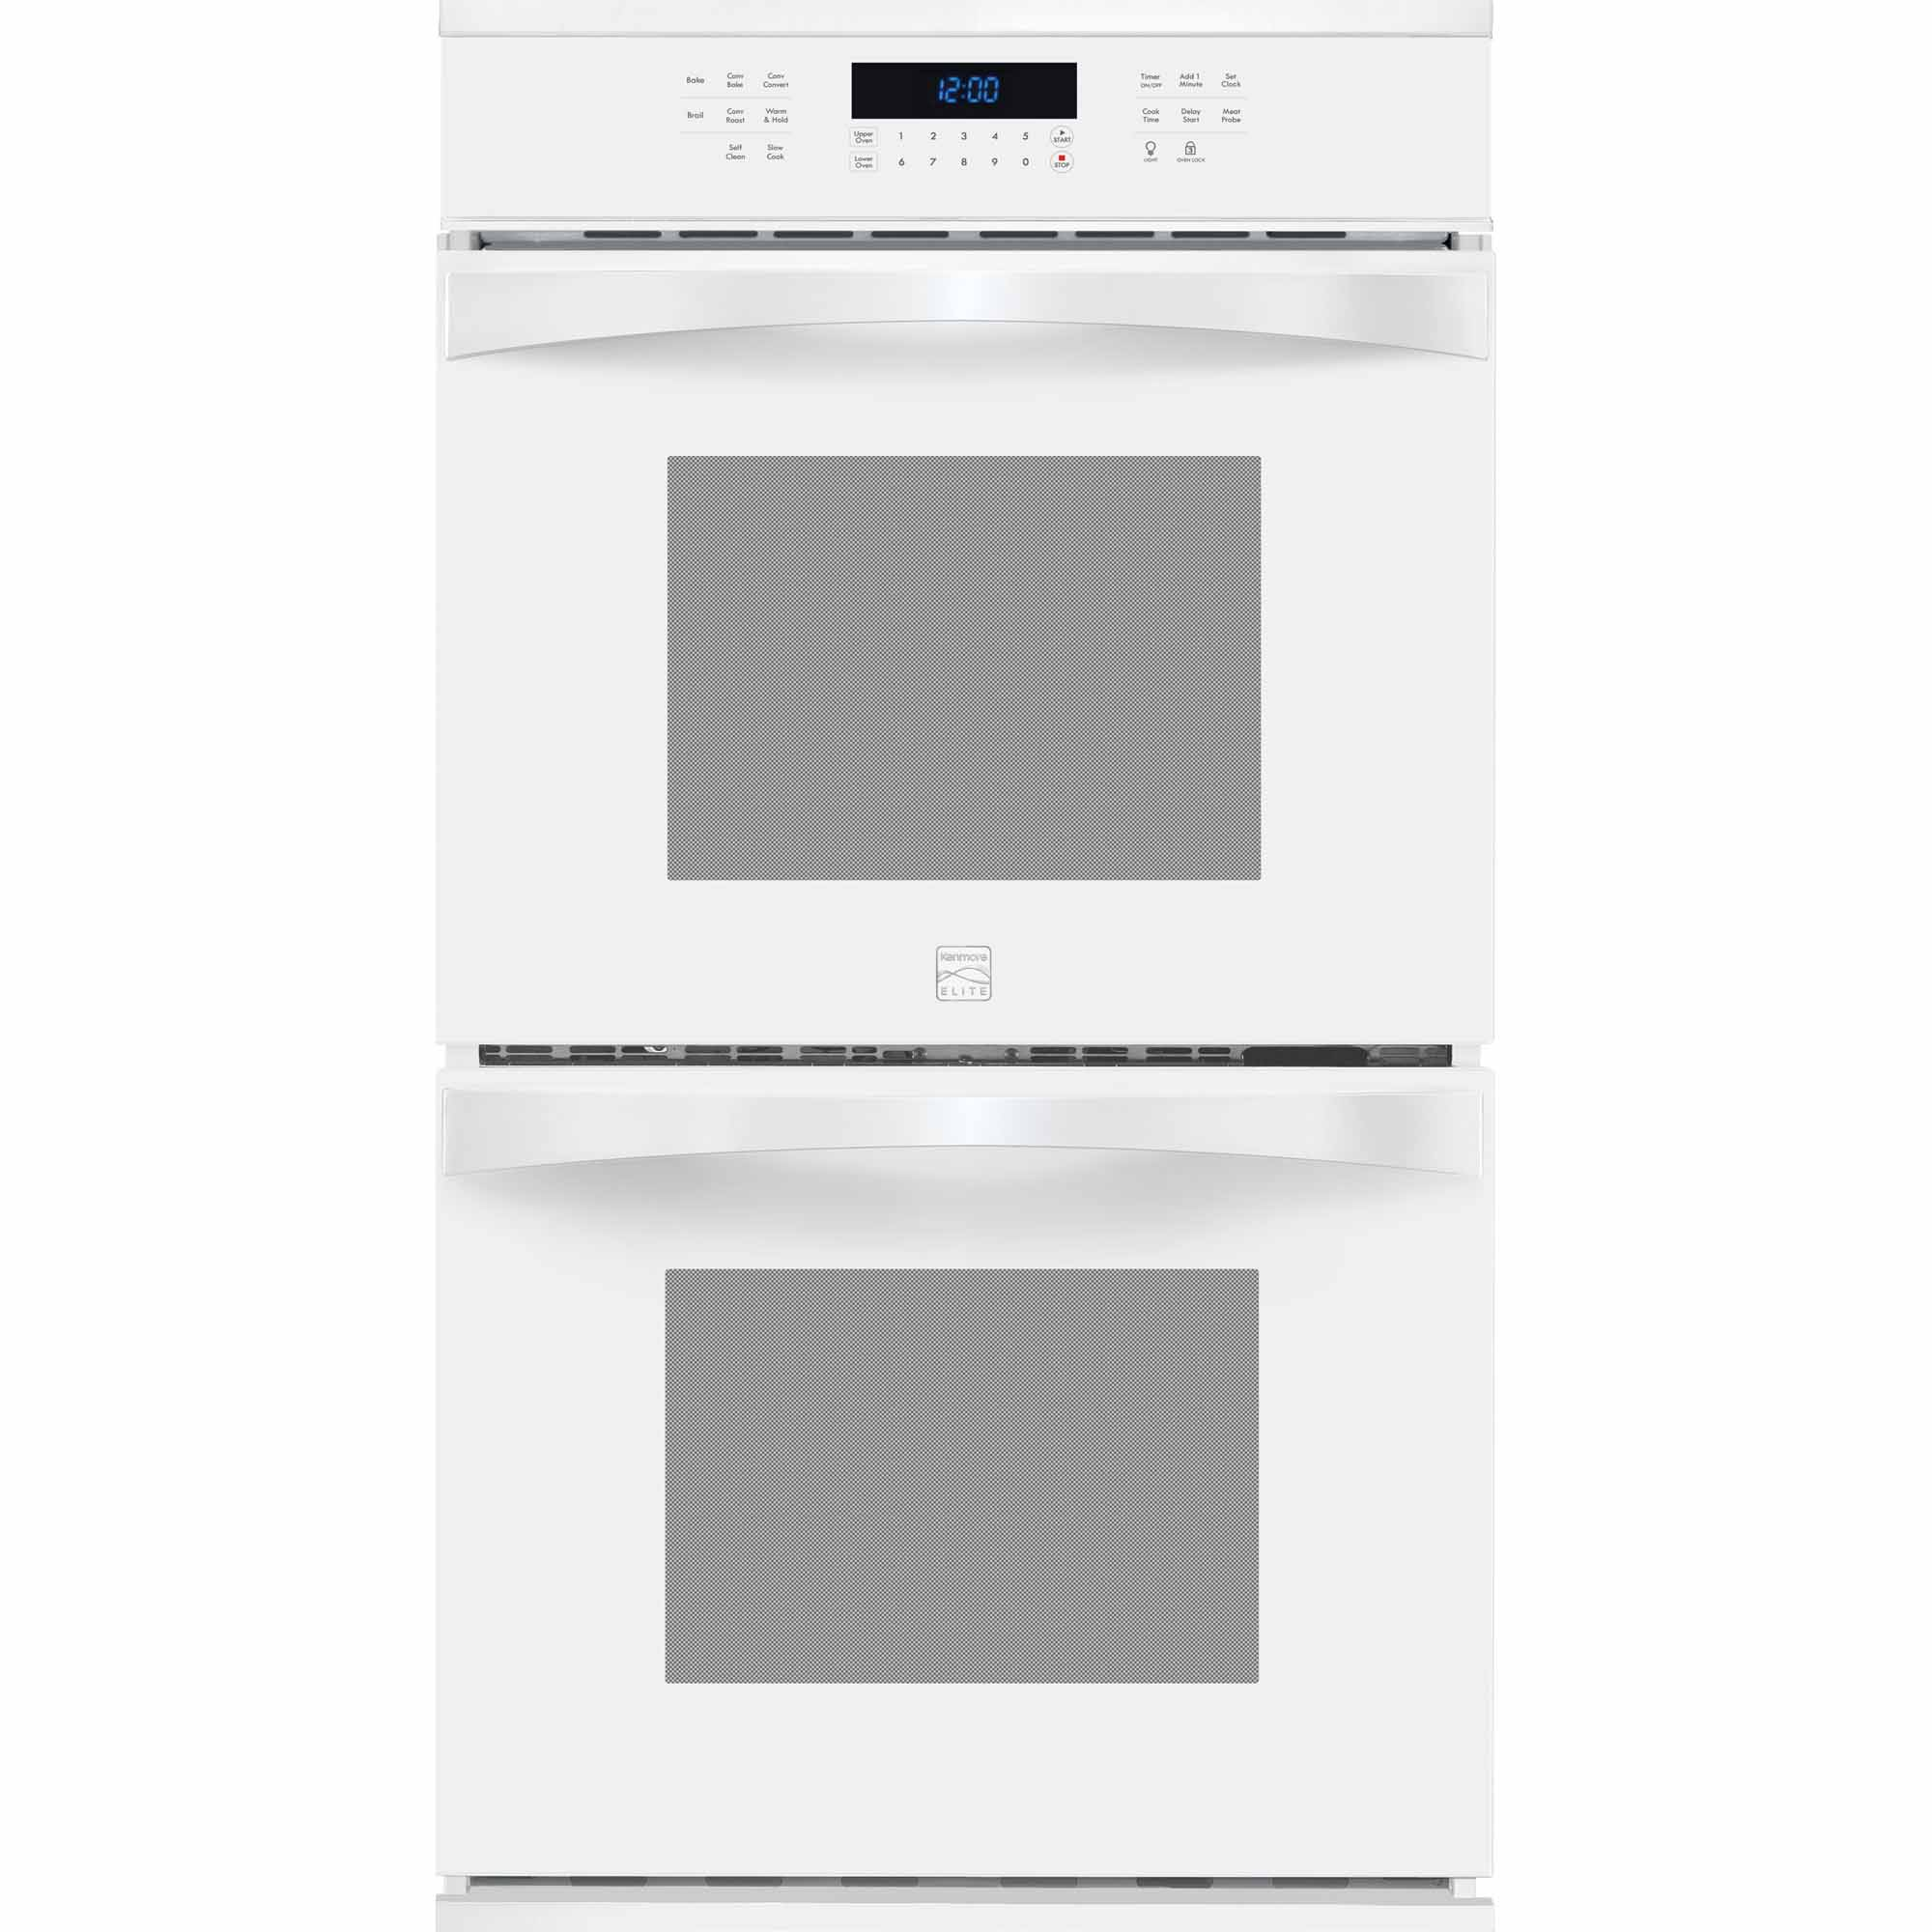 48442-27-Electric-Double-Wall-Oven-w-True-Convection%E2%84%A2-White